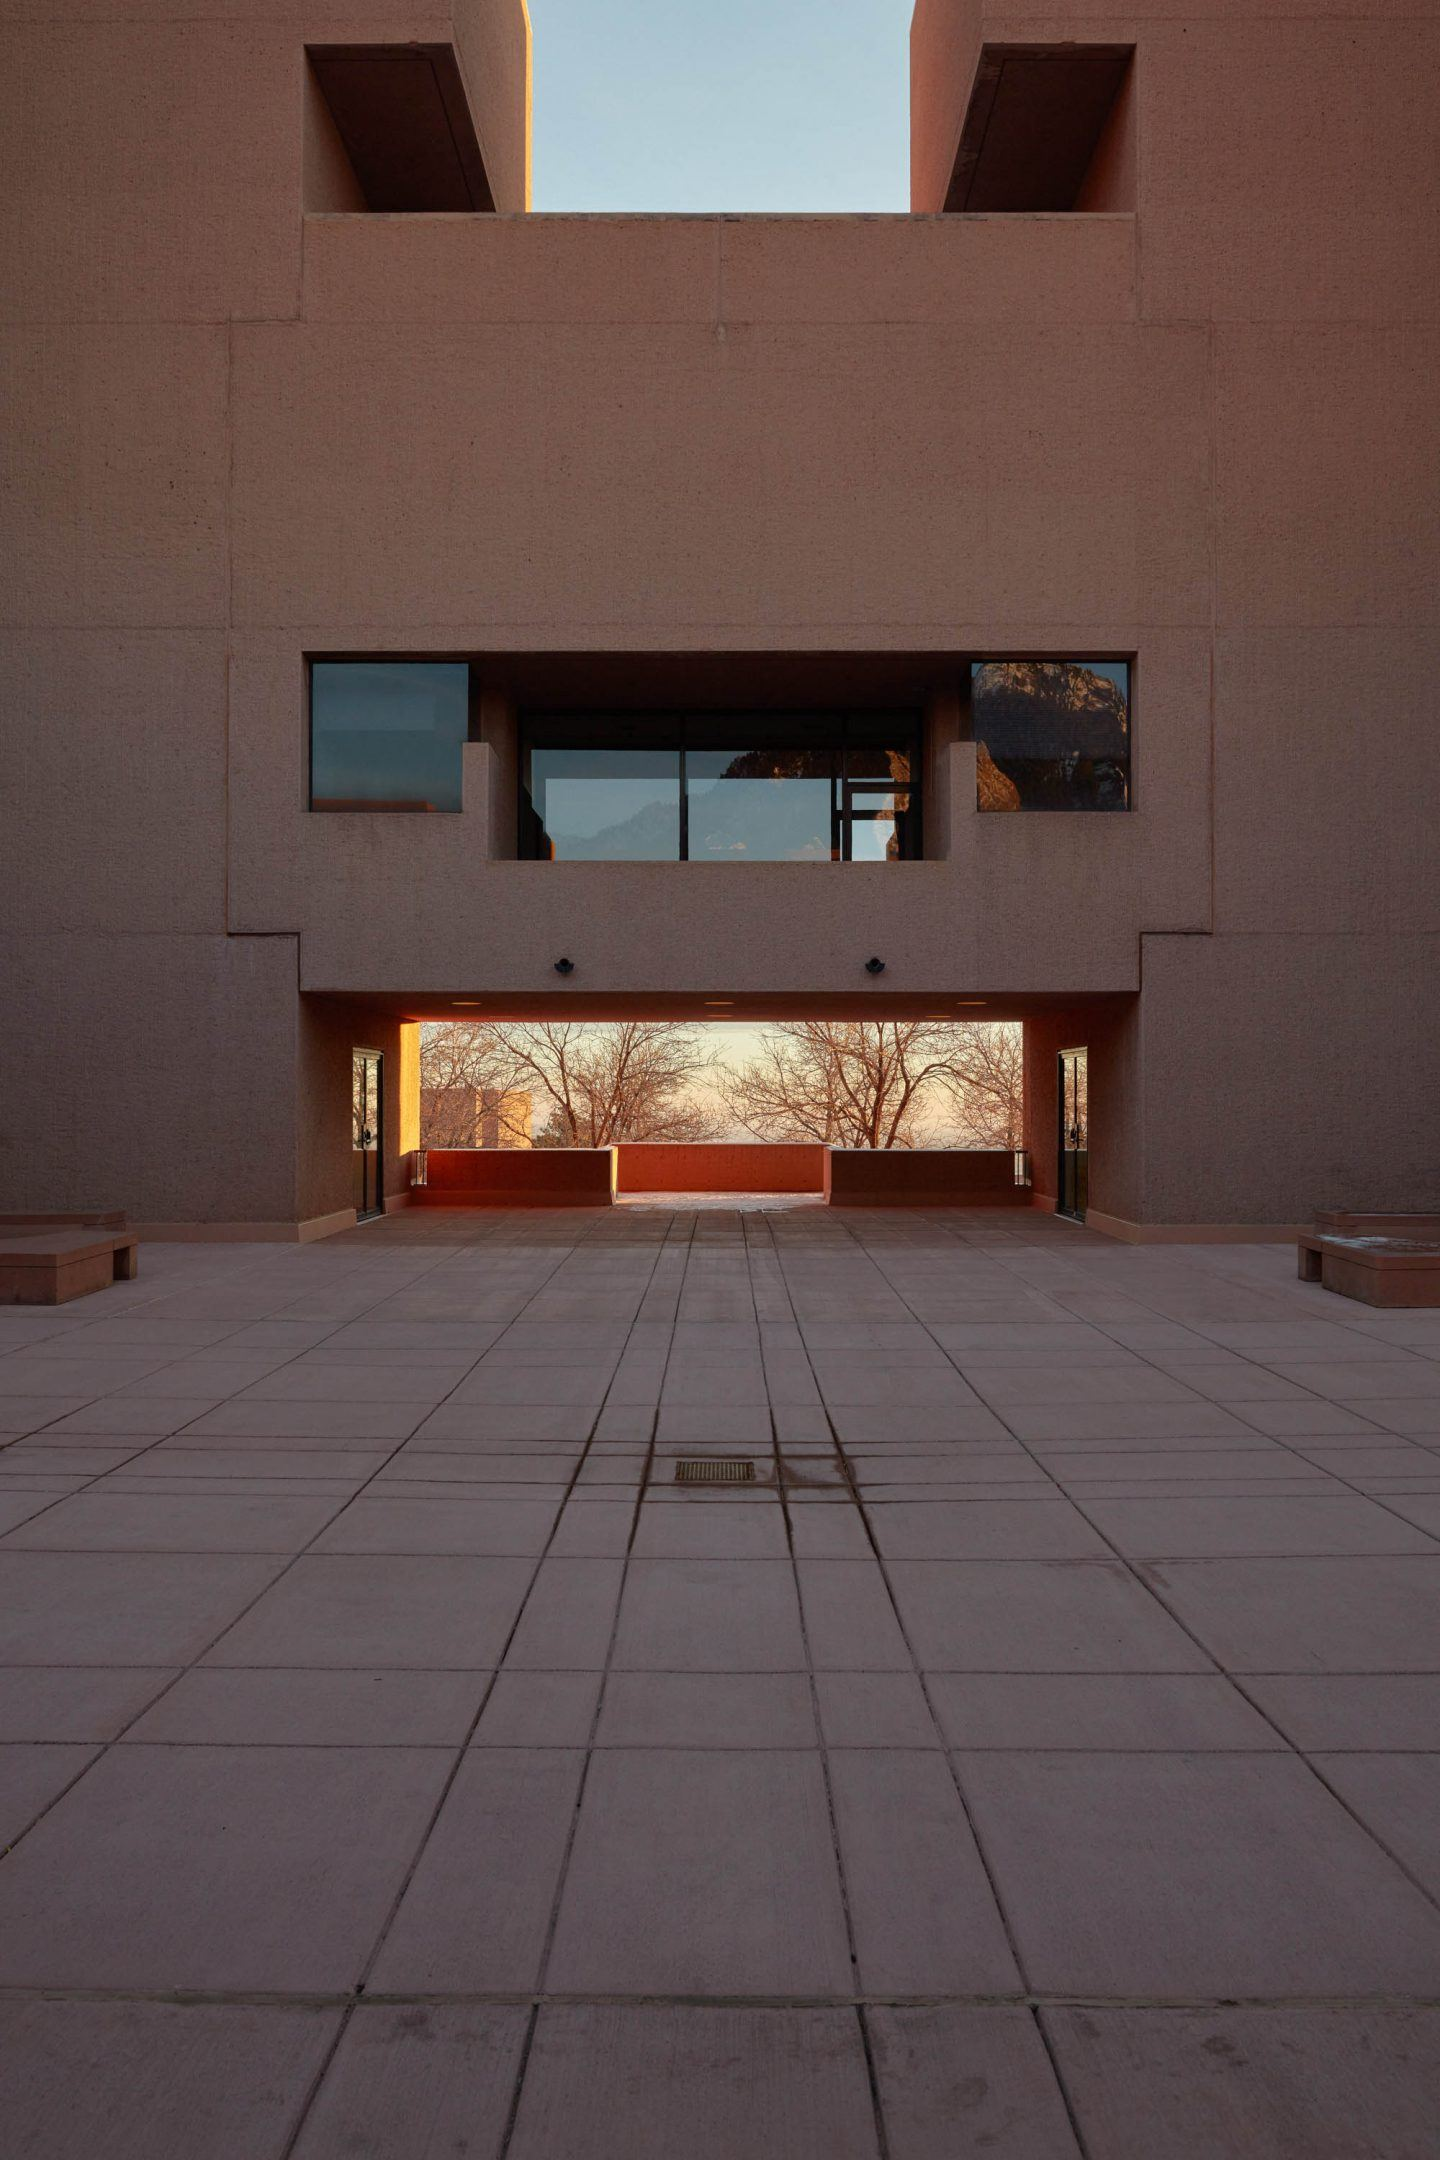 IGNANT-Architecture-Im-Pei-Mesa-Laboratory-By-Tom-Ross-20